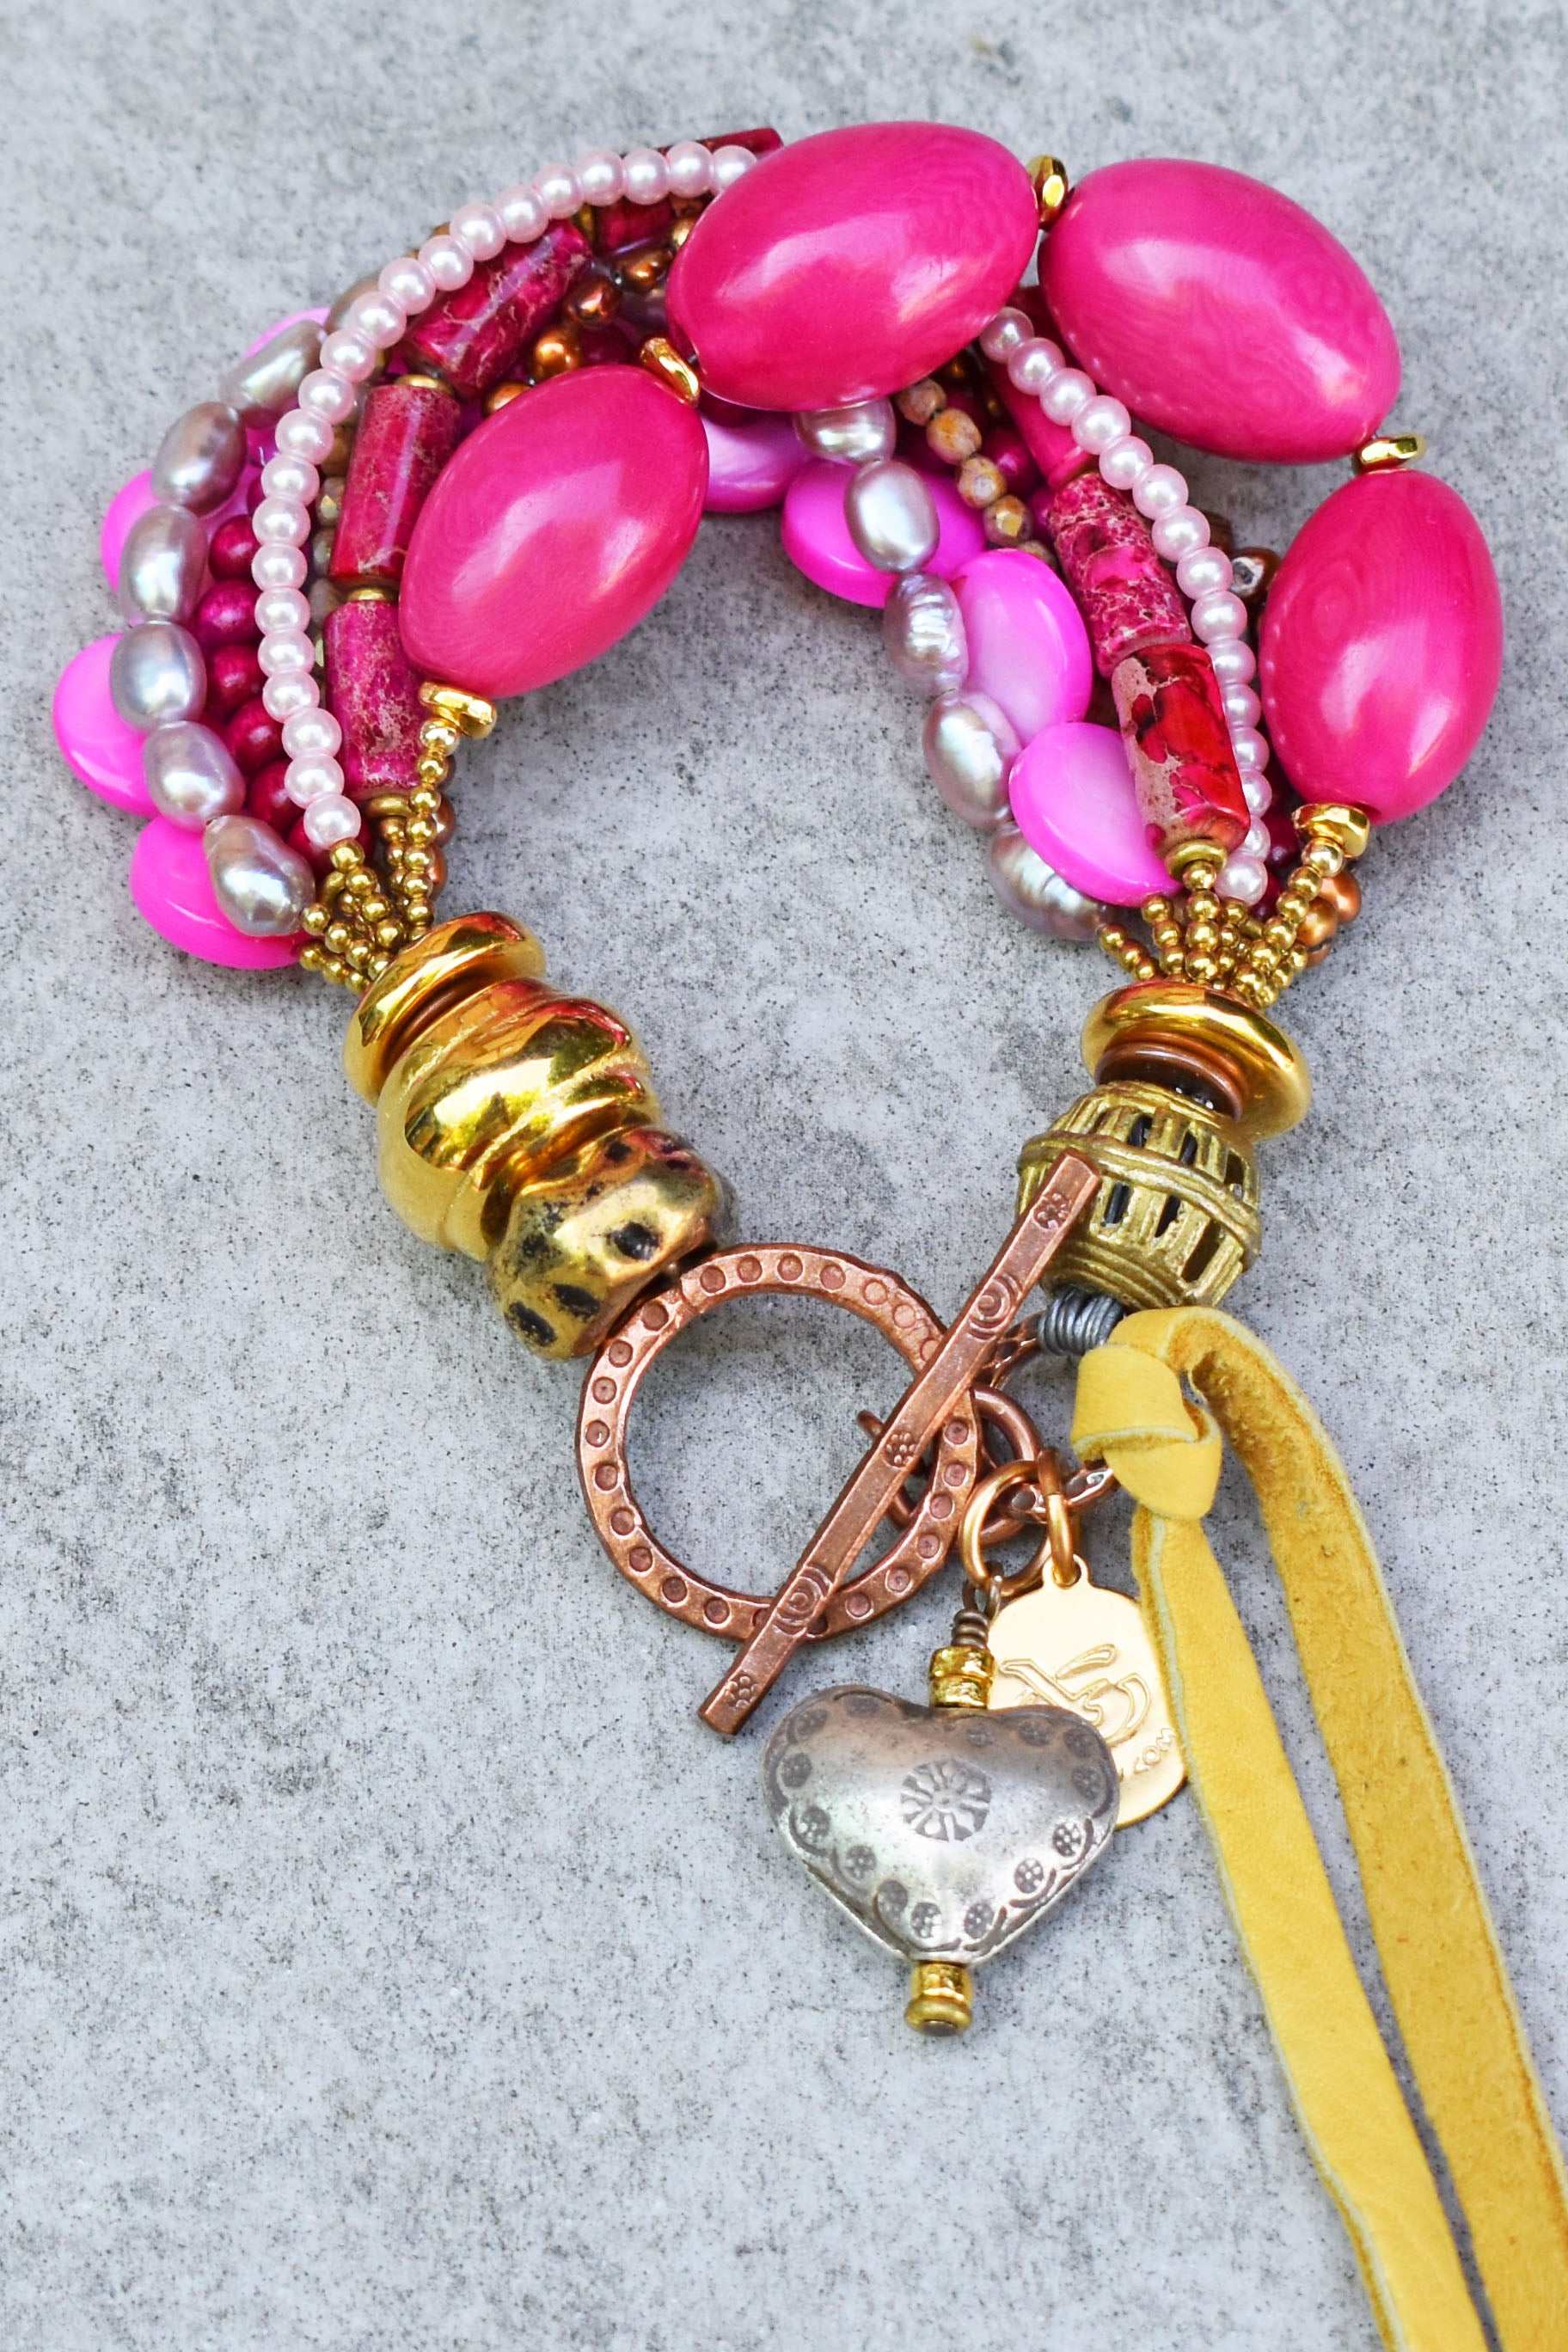 Vibrant and Fun Mixed PINK and Mixed Metals Heart Charm Bracelet